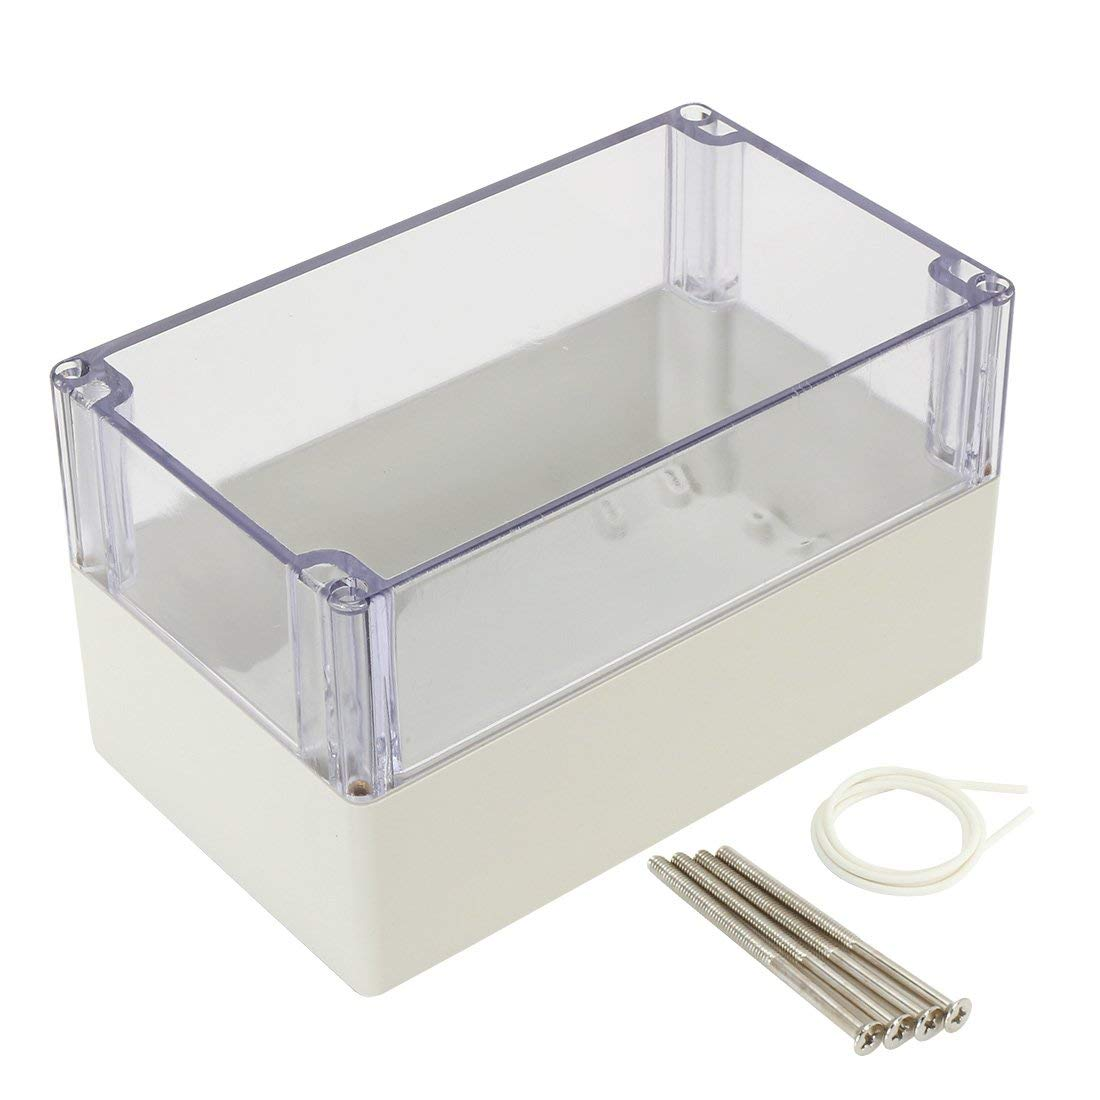 290mmx210mmx60mm sourcingmap/® 11.4x8.3x2.3 ABS Junction Box Universal Project Enclosure w PC Transparent Cover